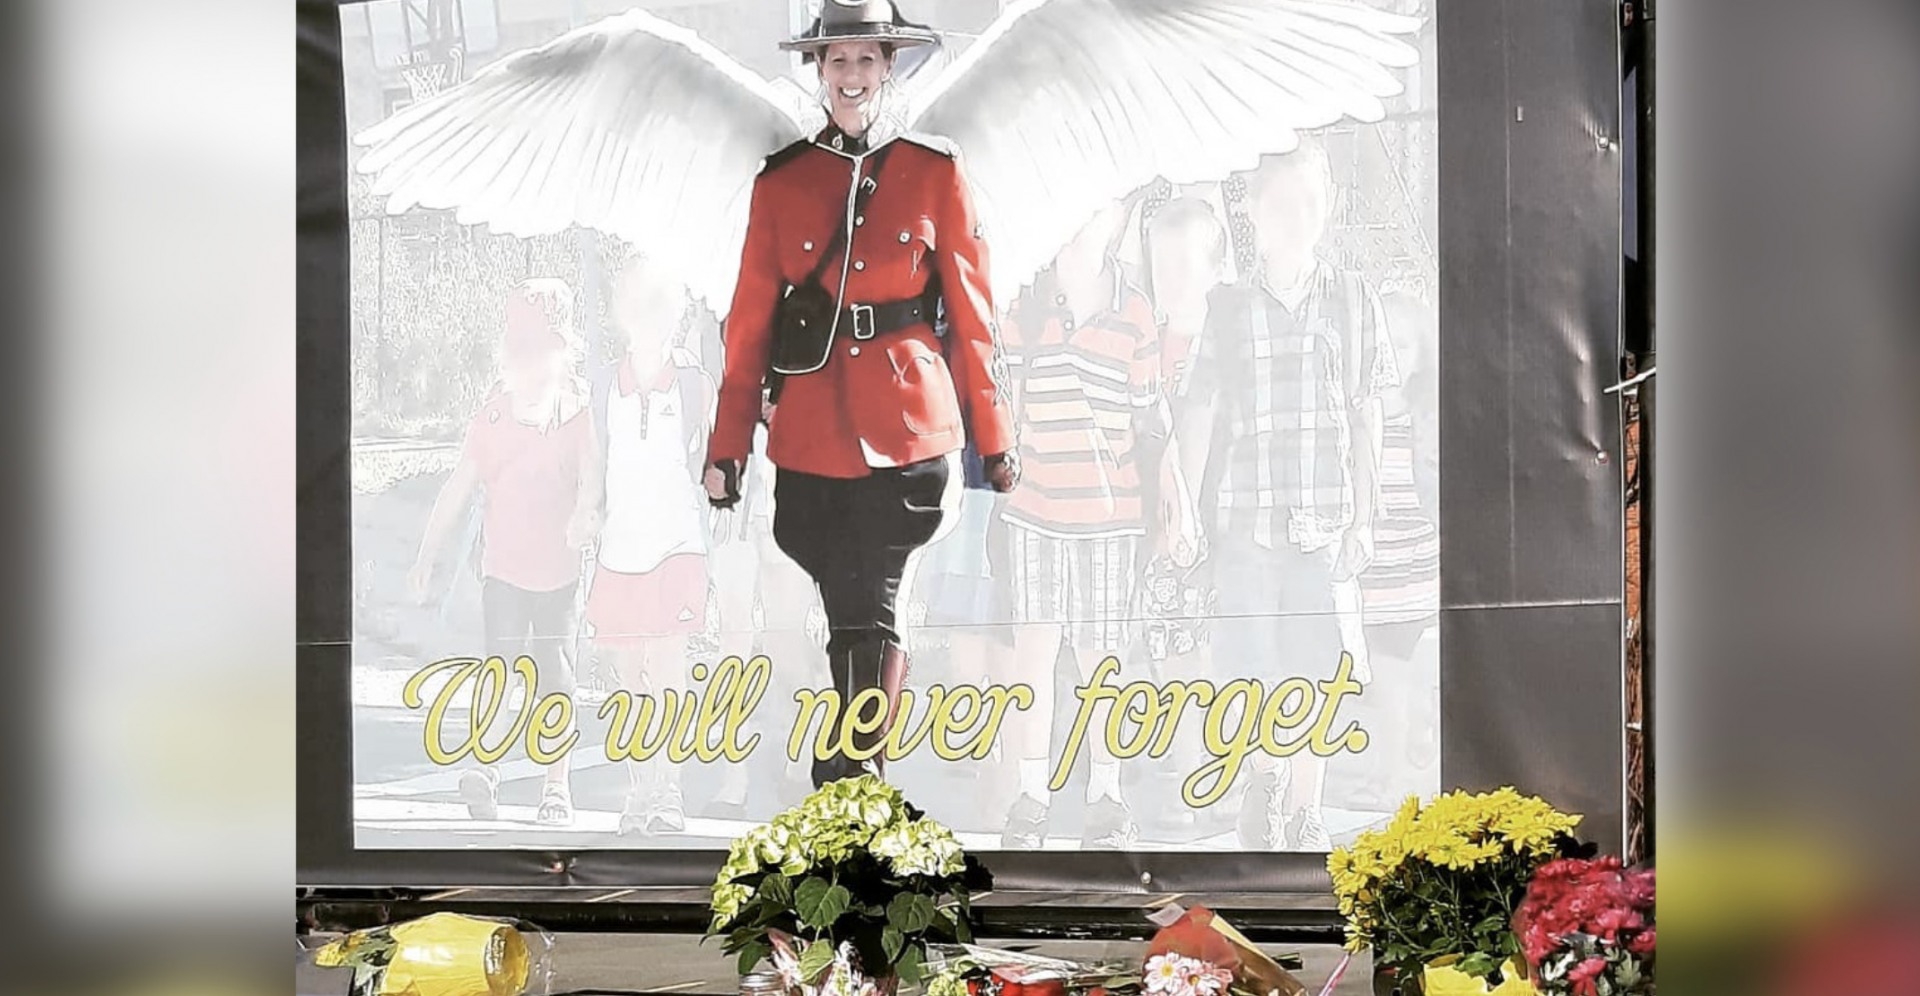 Nova Scotia shooting death toll reaches 23: RCMP